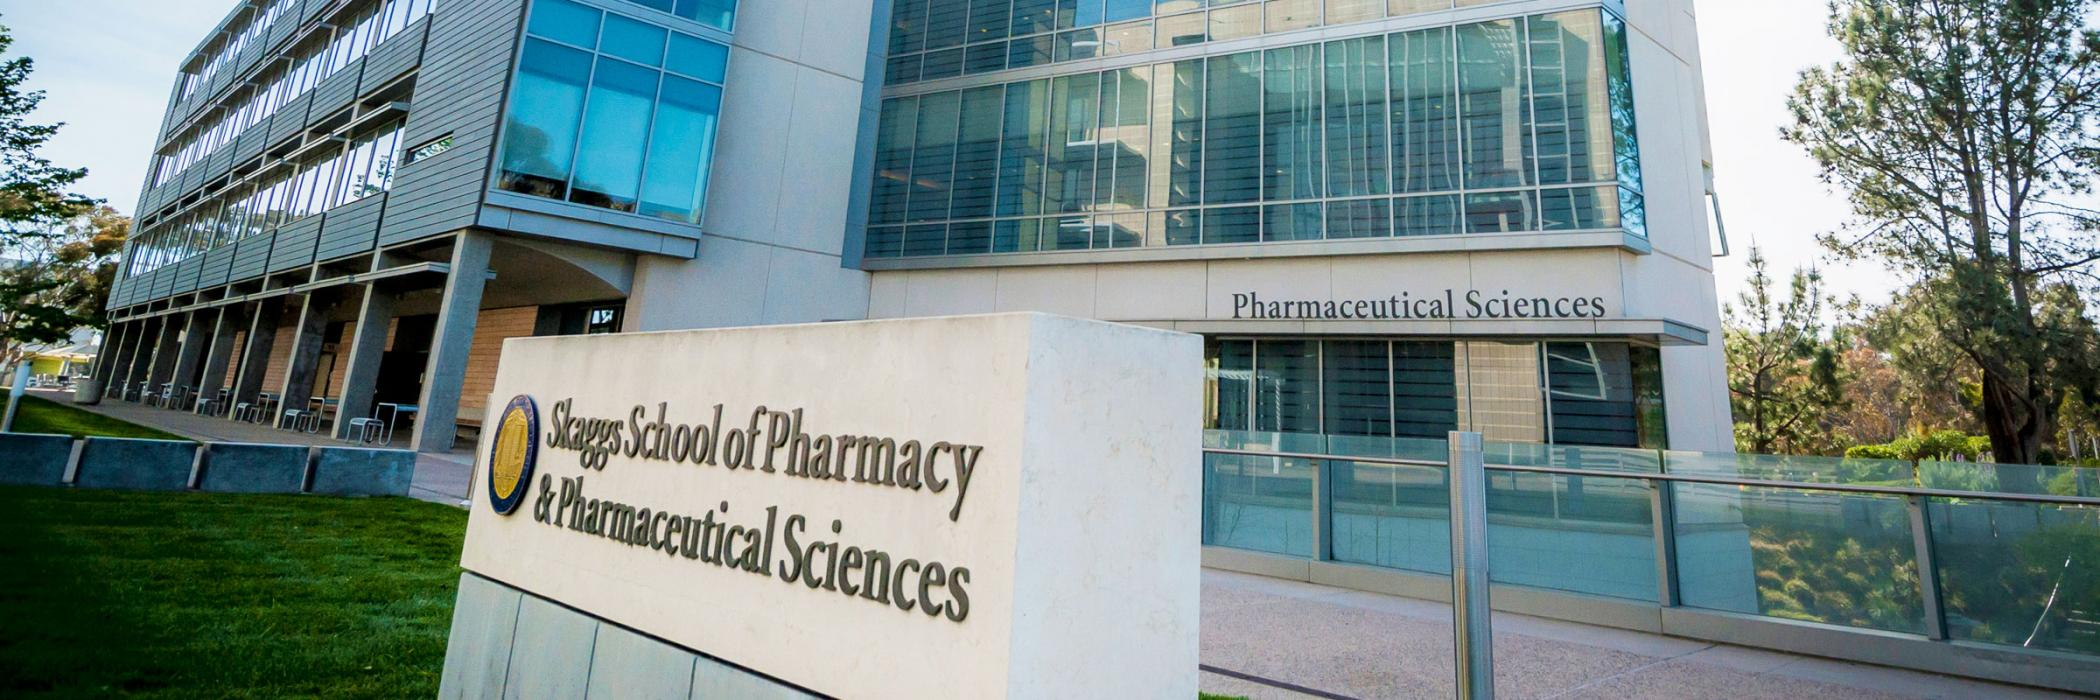 Ucsd Academic Calendar 2019 2021 Home | Skaggs School of Pharmacy and Pharmaceutical Sciences